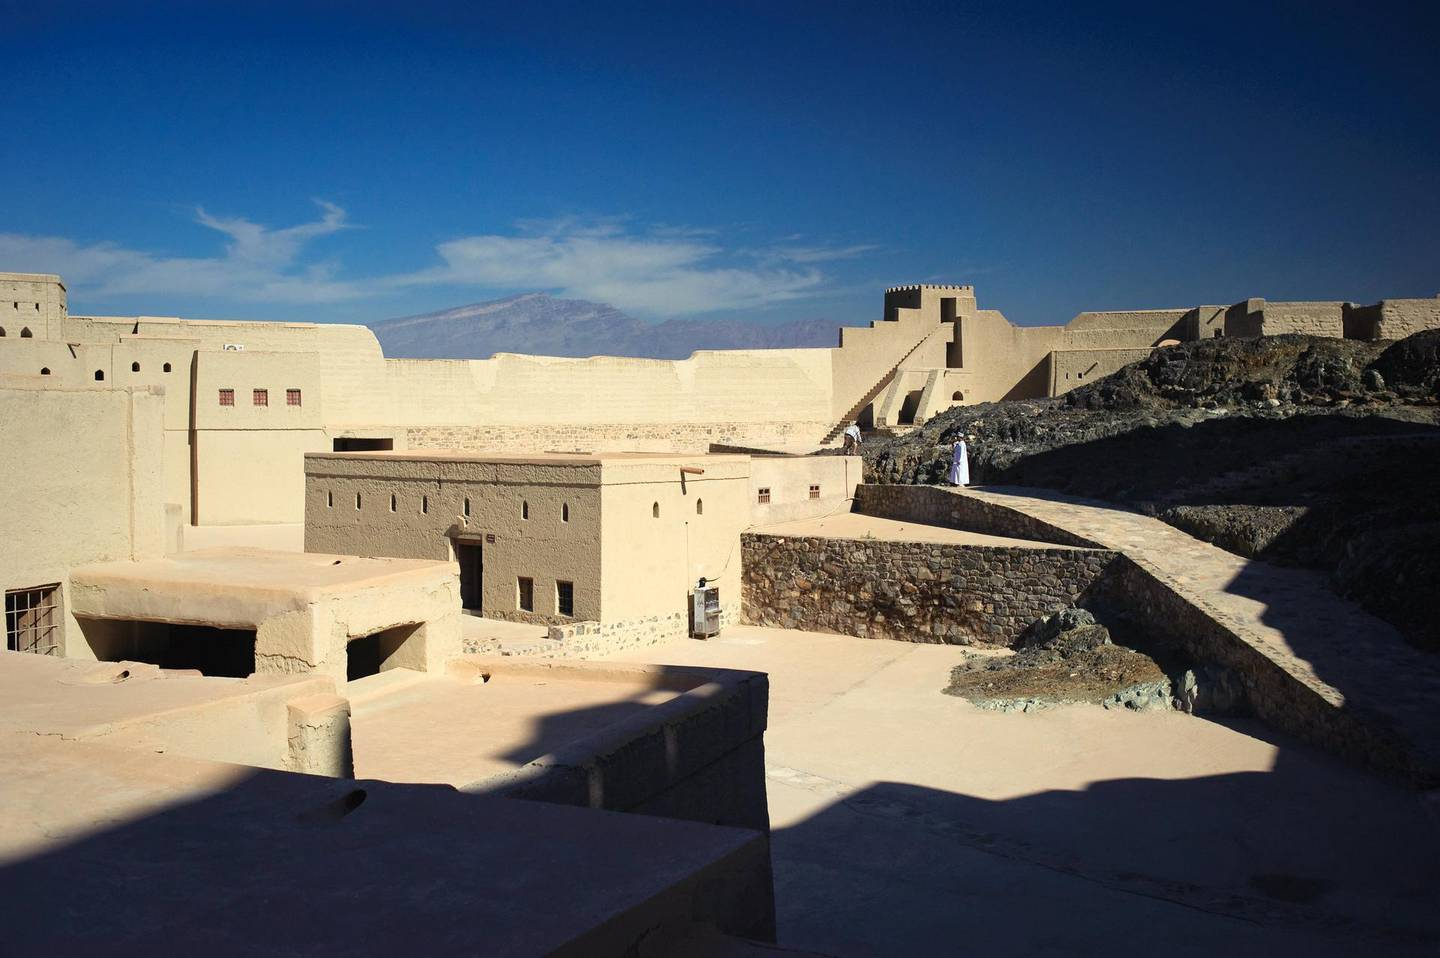 Bahla Fort is a UNESCO World Heritage Site located in Northern Oman.